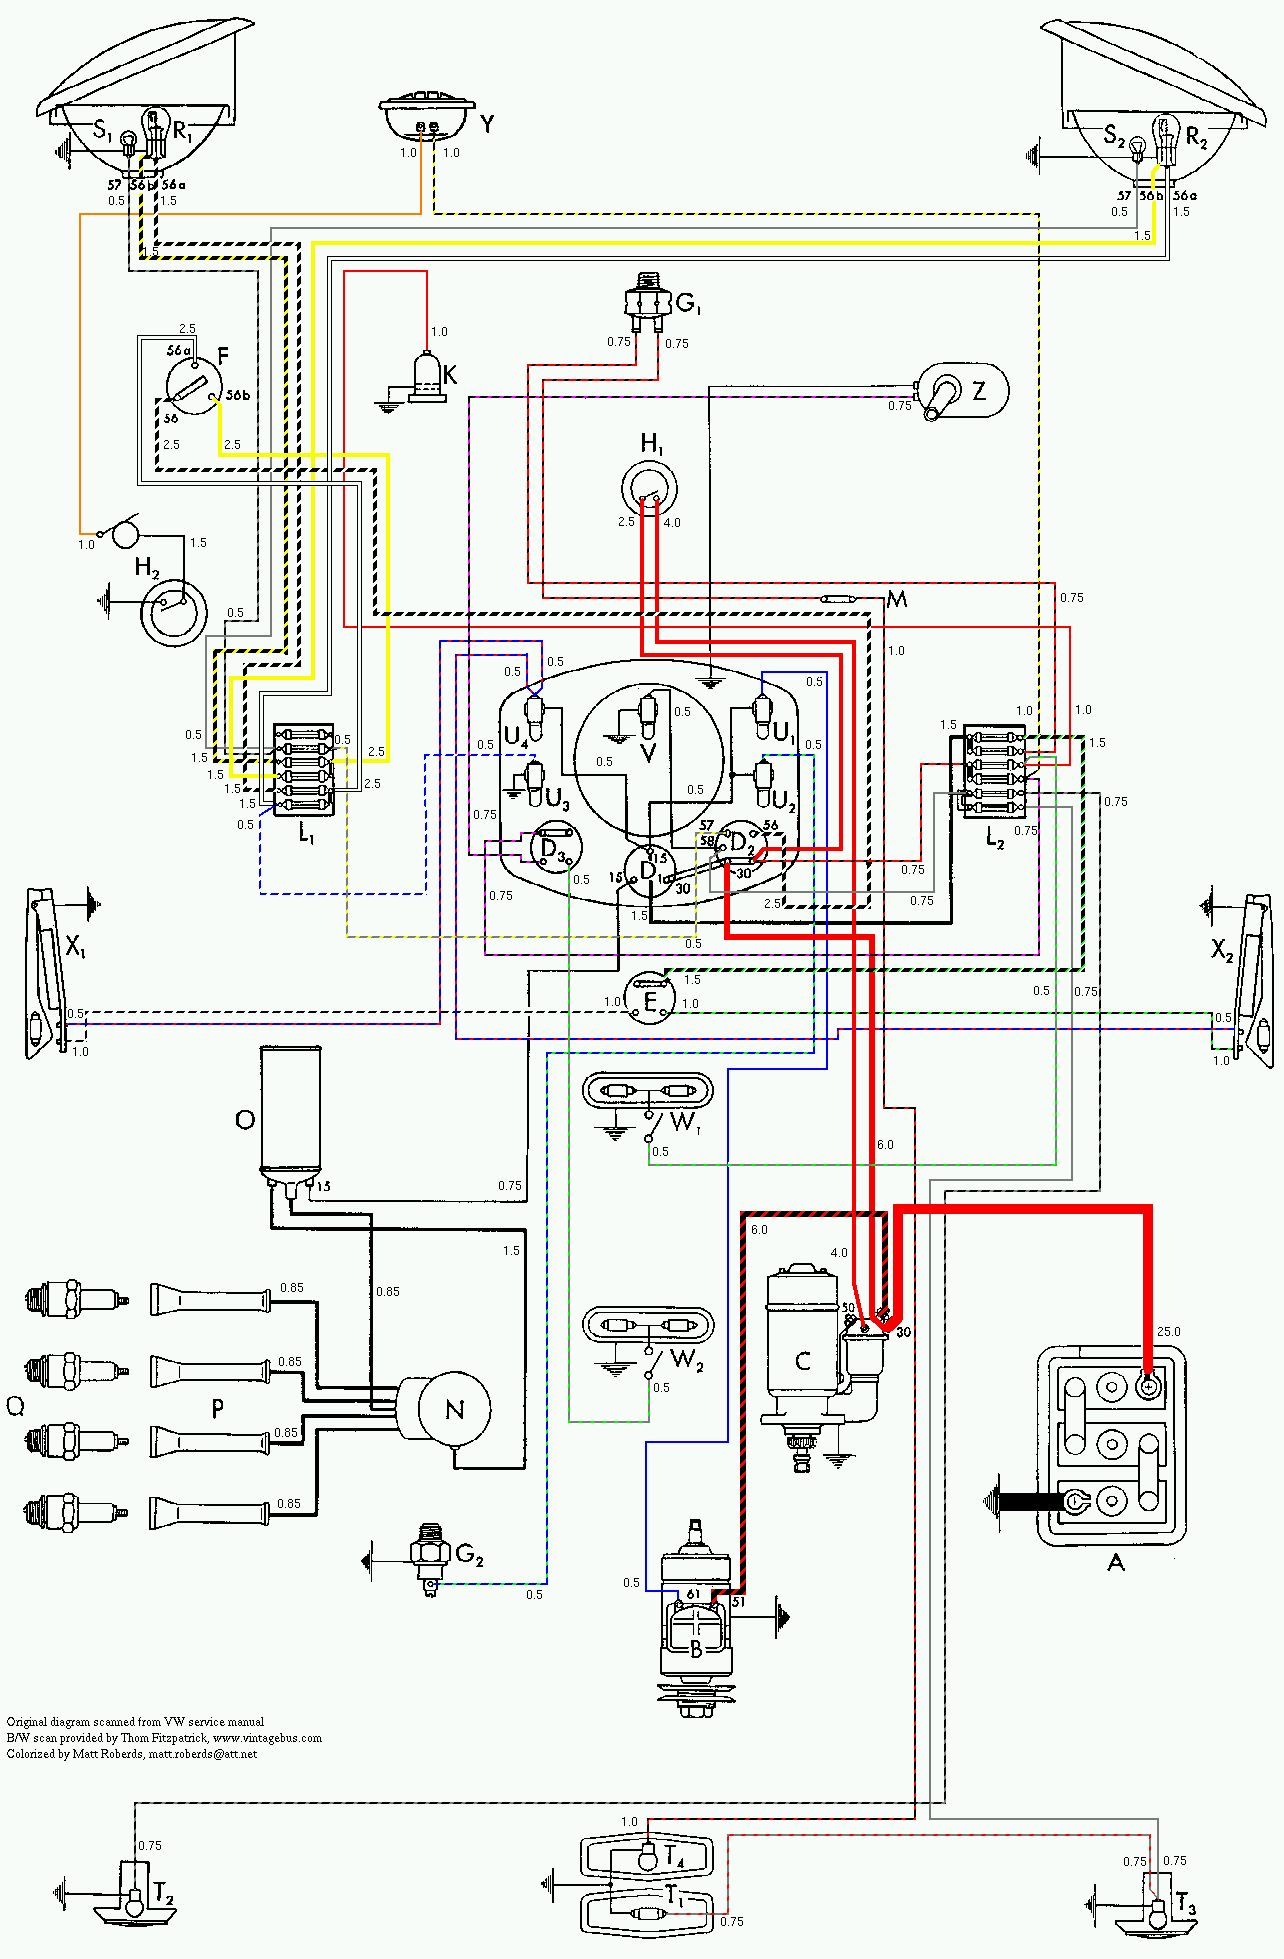 1950 to 1953 1956 vw beetle wiring diagram volkswagen beetle wiring diagram